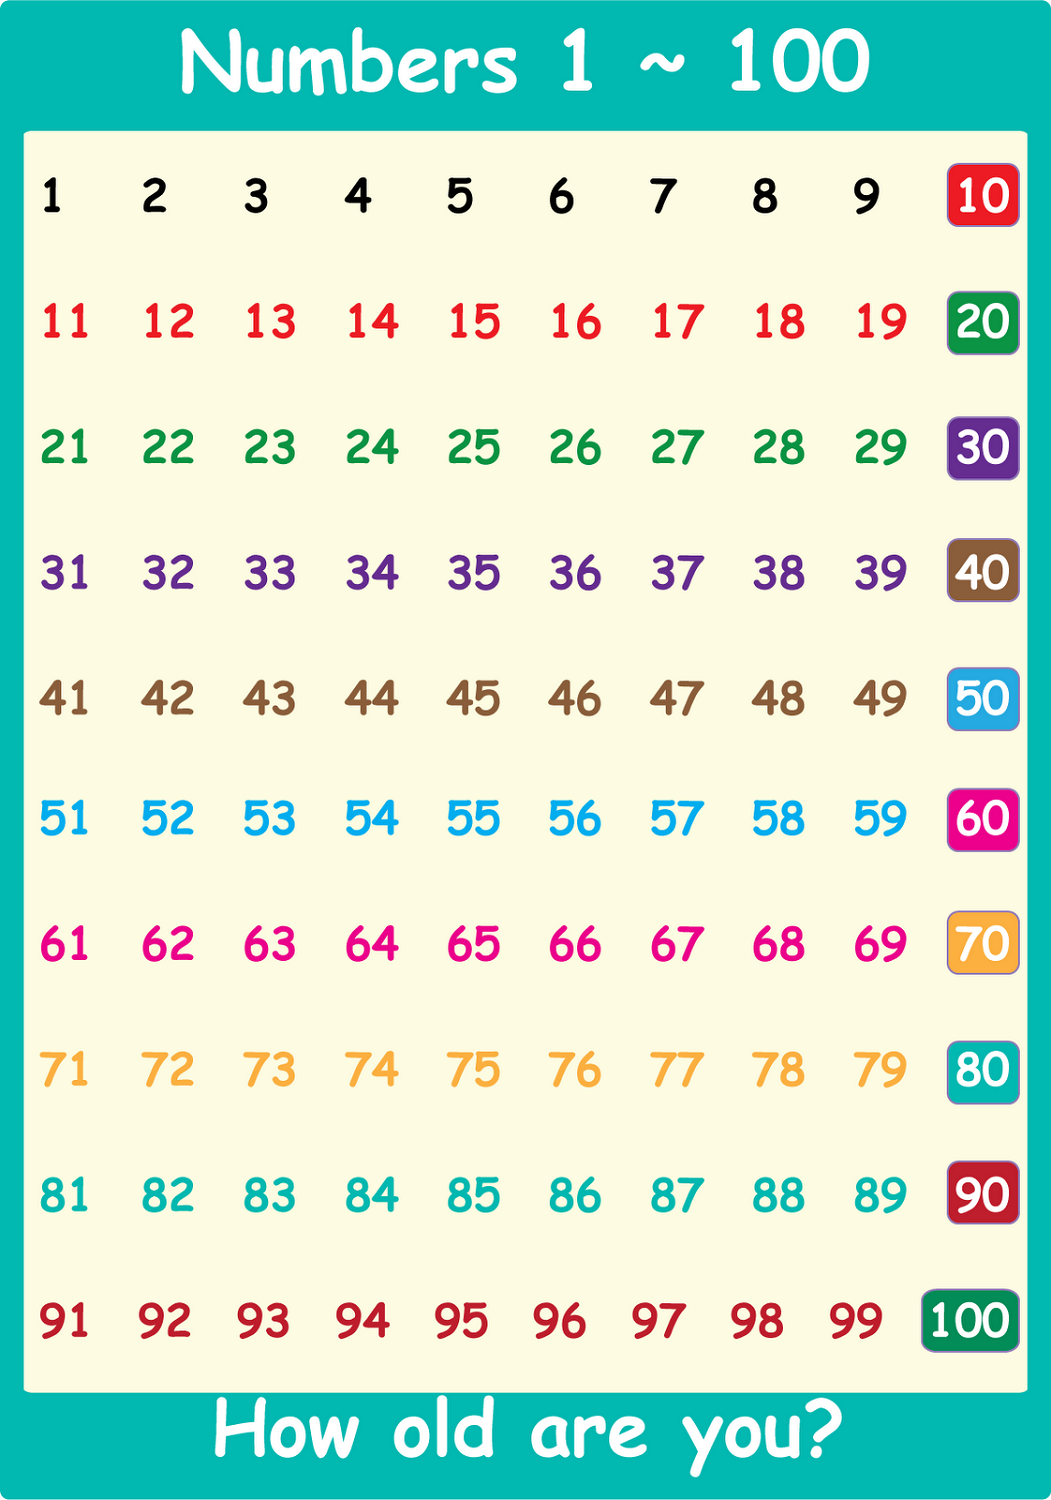 image about Printable Number Chart 1-100 titled Charts of Range 1-100 No cost Match Shelter